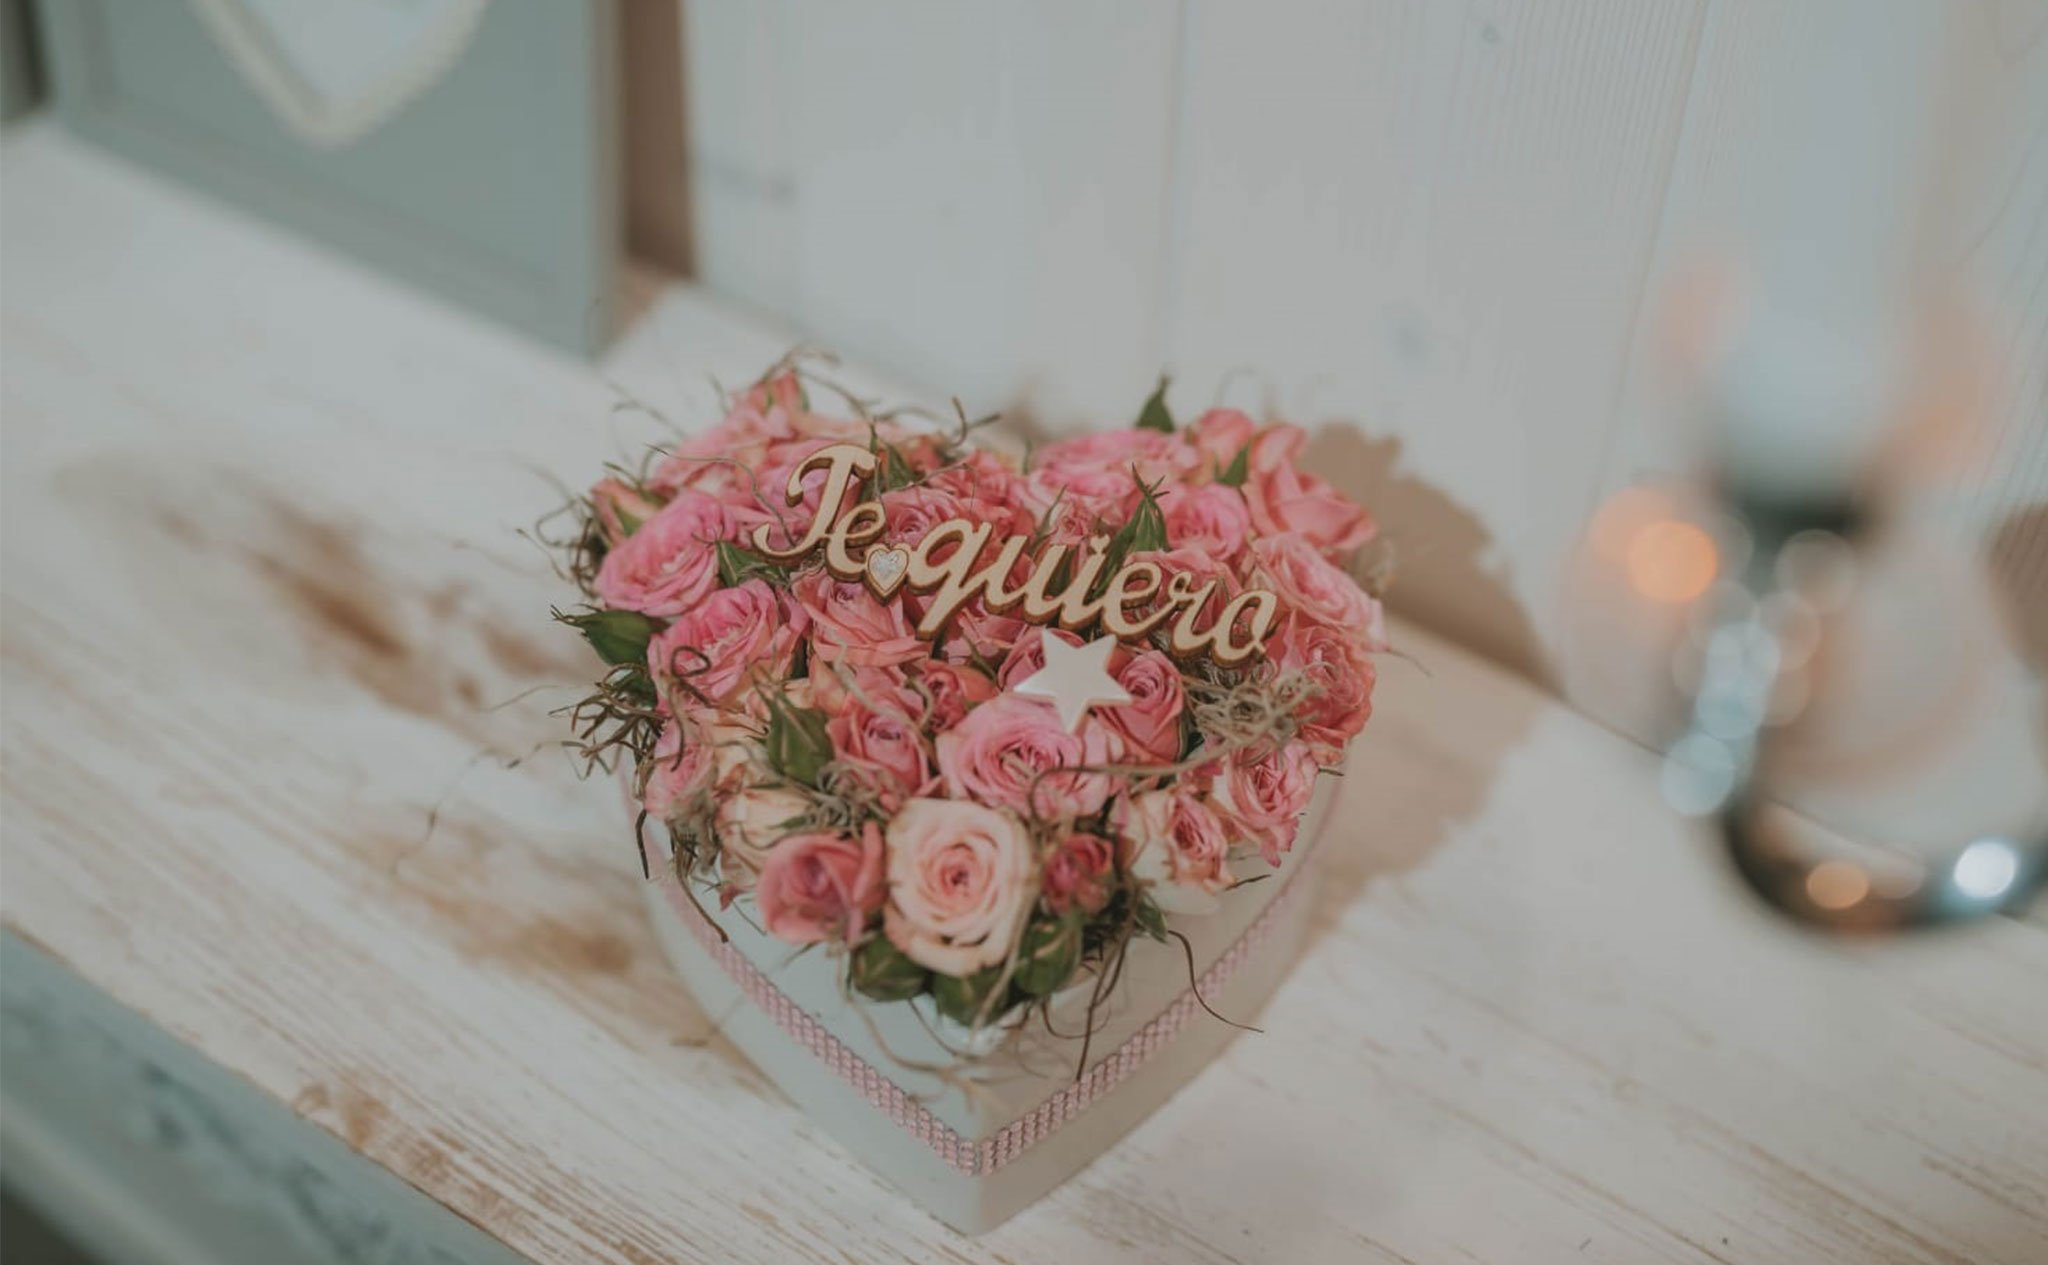 Details for Valentine's Day - Weddings and Flowers